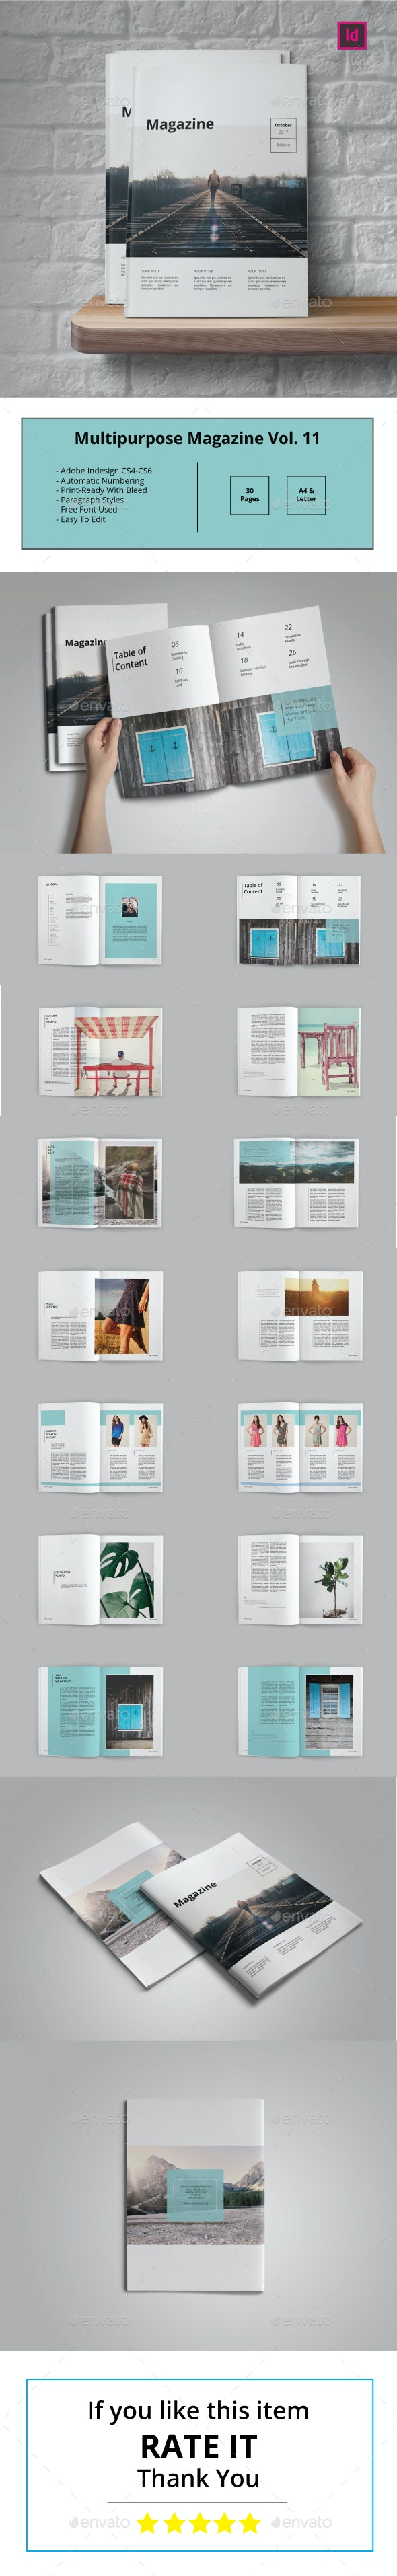 Multipurpose Magazine Vol.11 - Magazines Print Templates